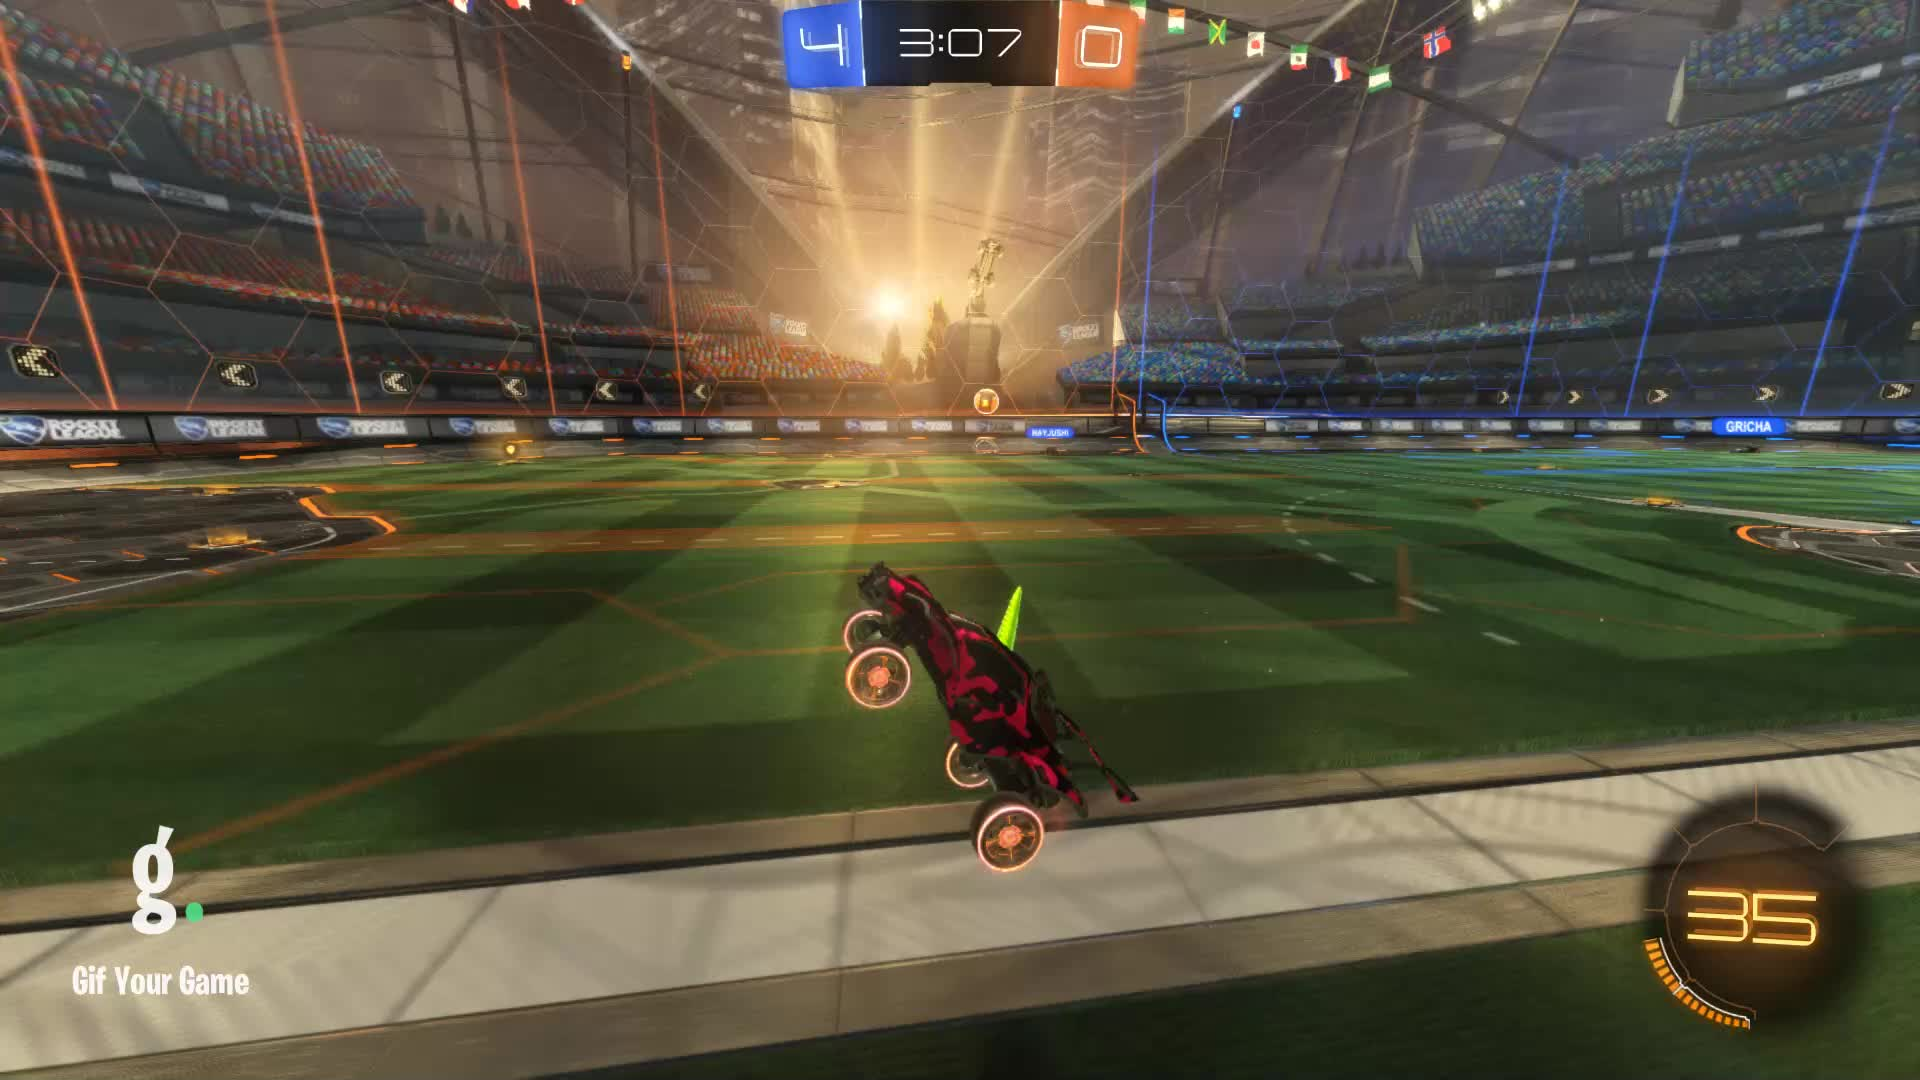 CROSSFIT JESUS, Gif Your Game, GifYourGame, Rocket League, RocketLeague, Assist 3: CROSSFIT JESUS +5 GIFs